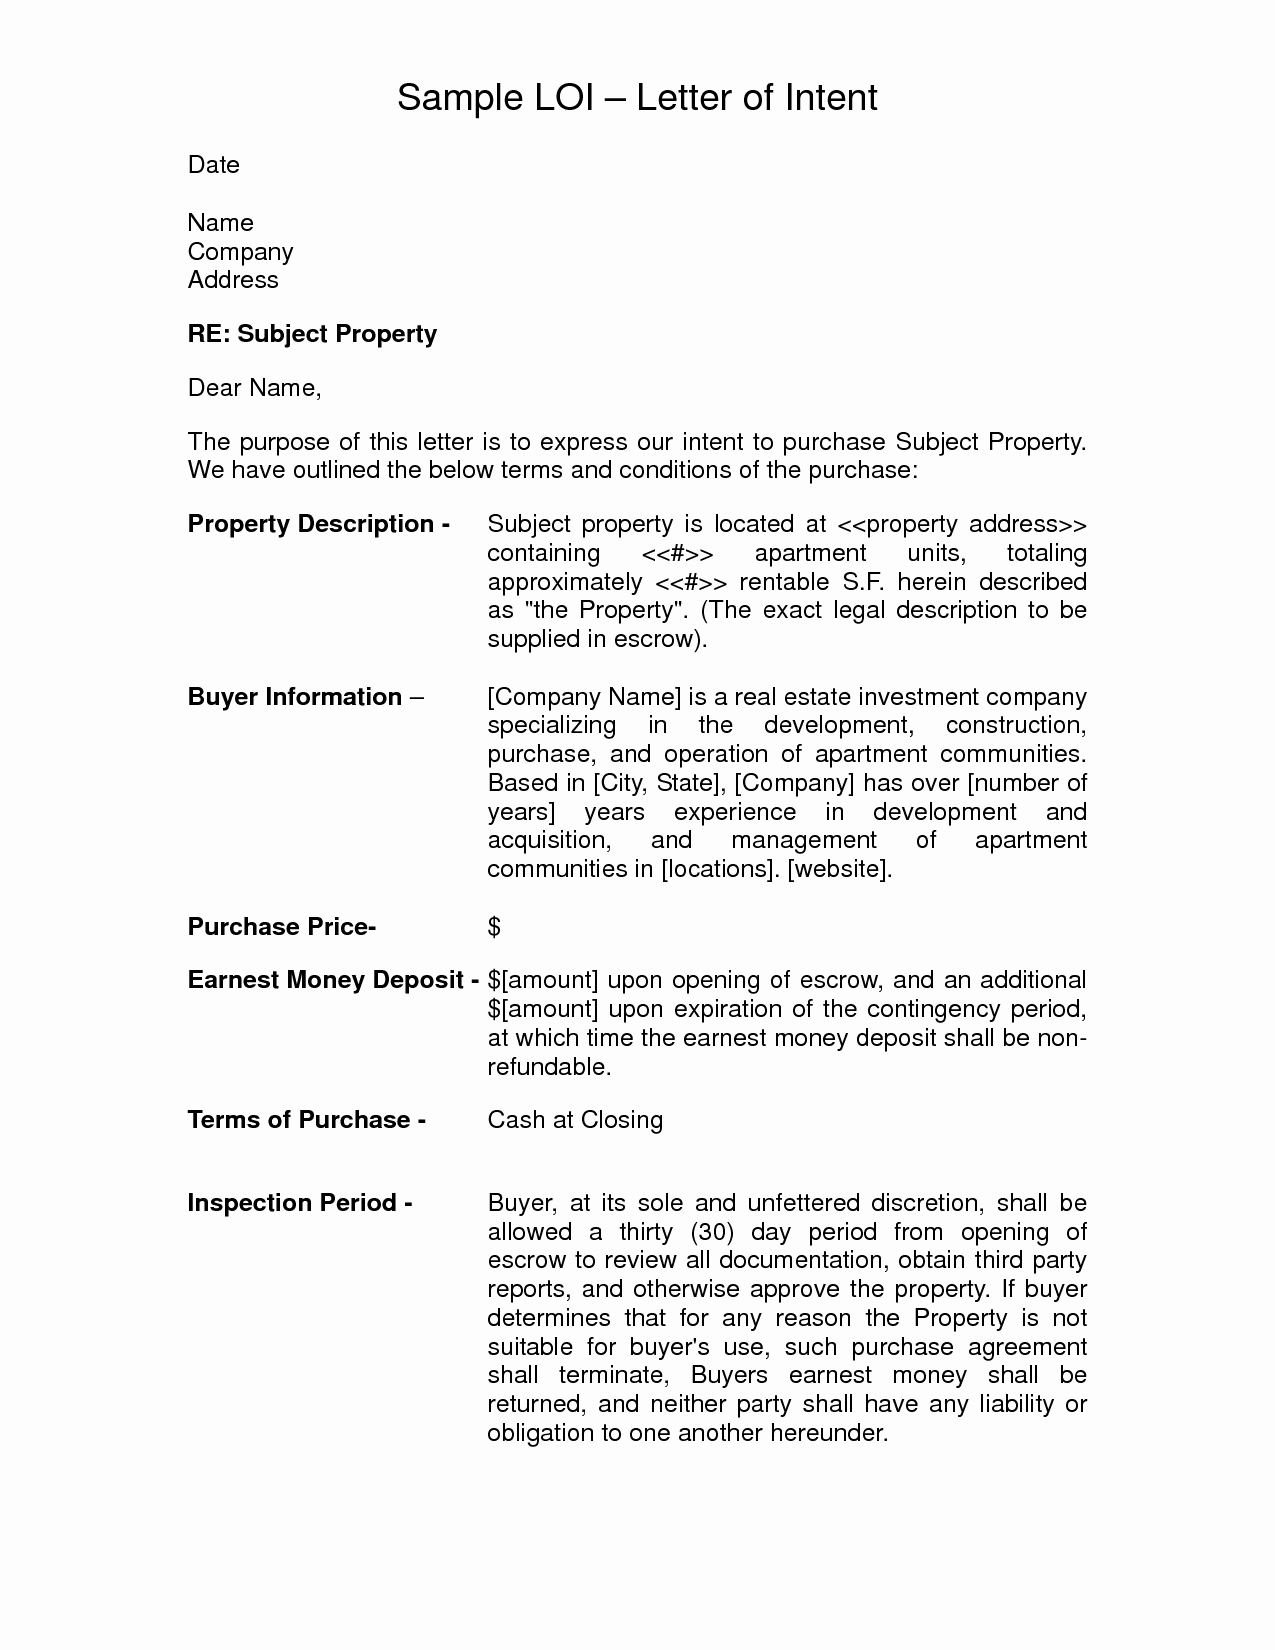 Commercial Real Estate Letter Of Intent to Purchase Template - Letter Intent to Purchase Property Template Beautiful Letter